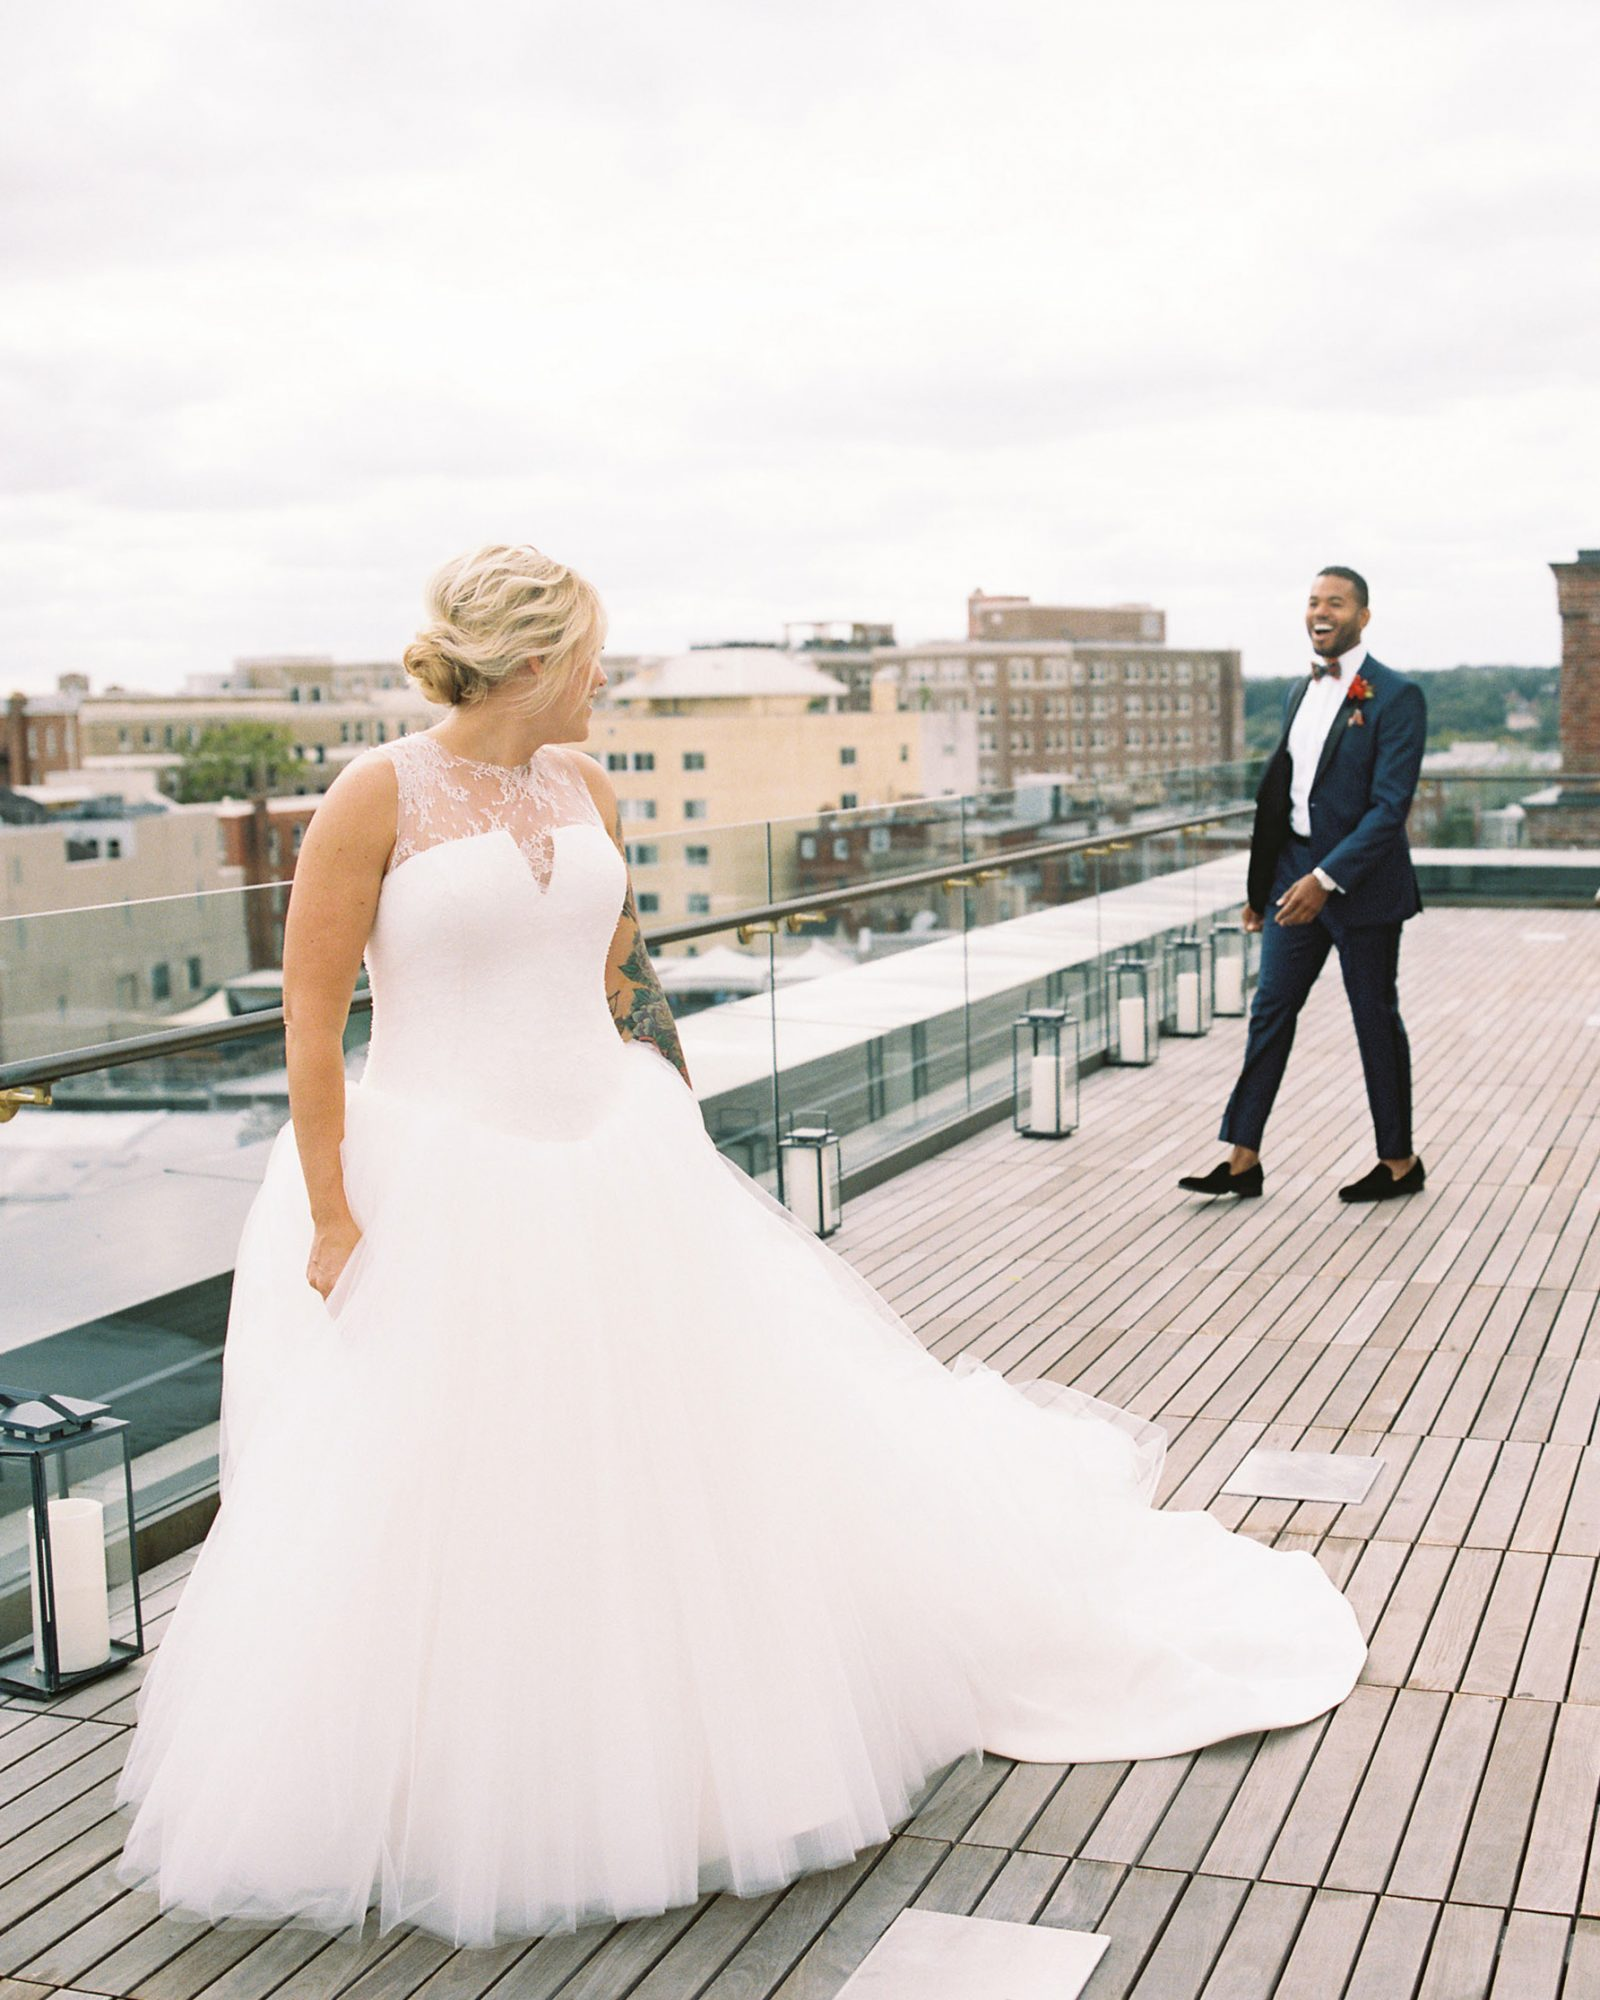 meaghan and david first look on rooftop